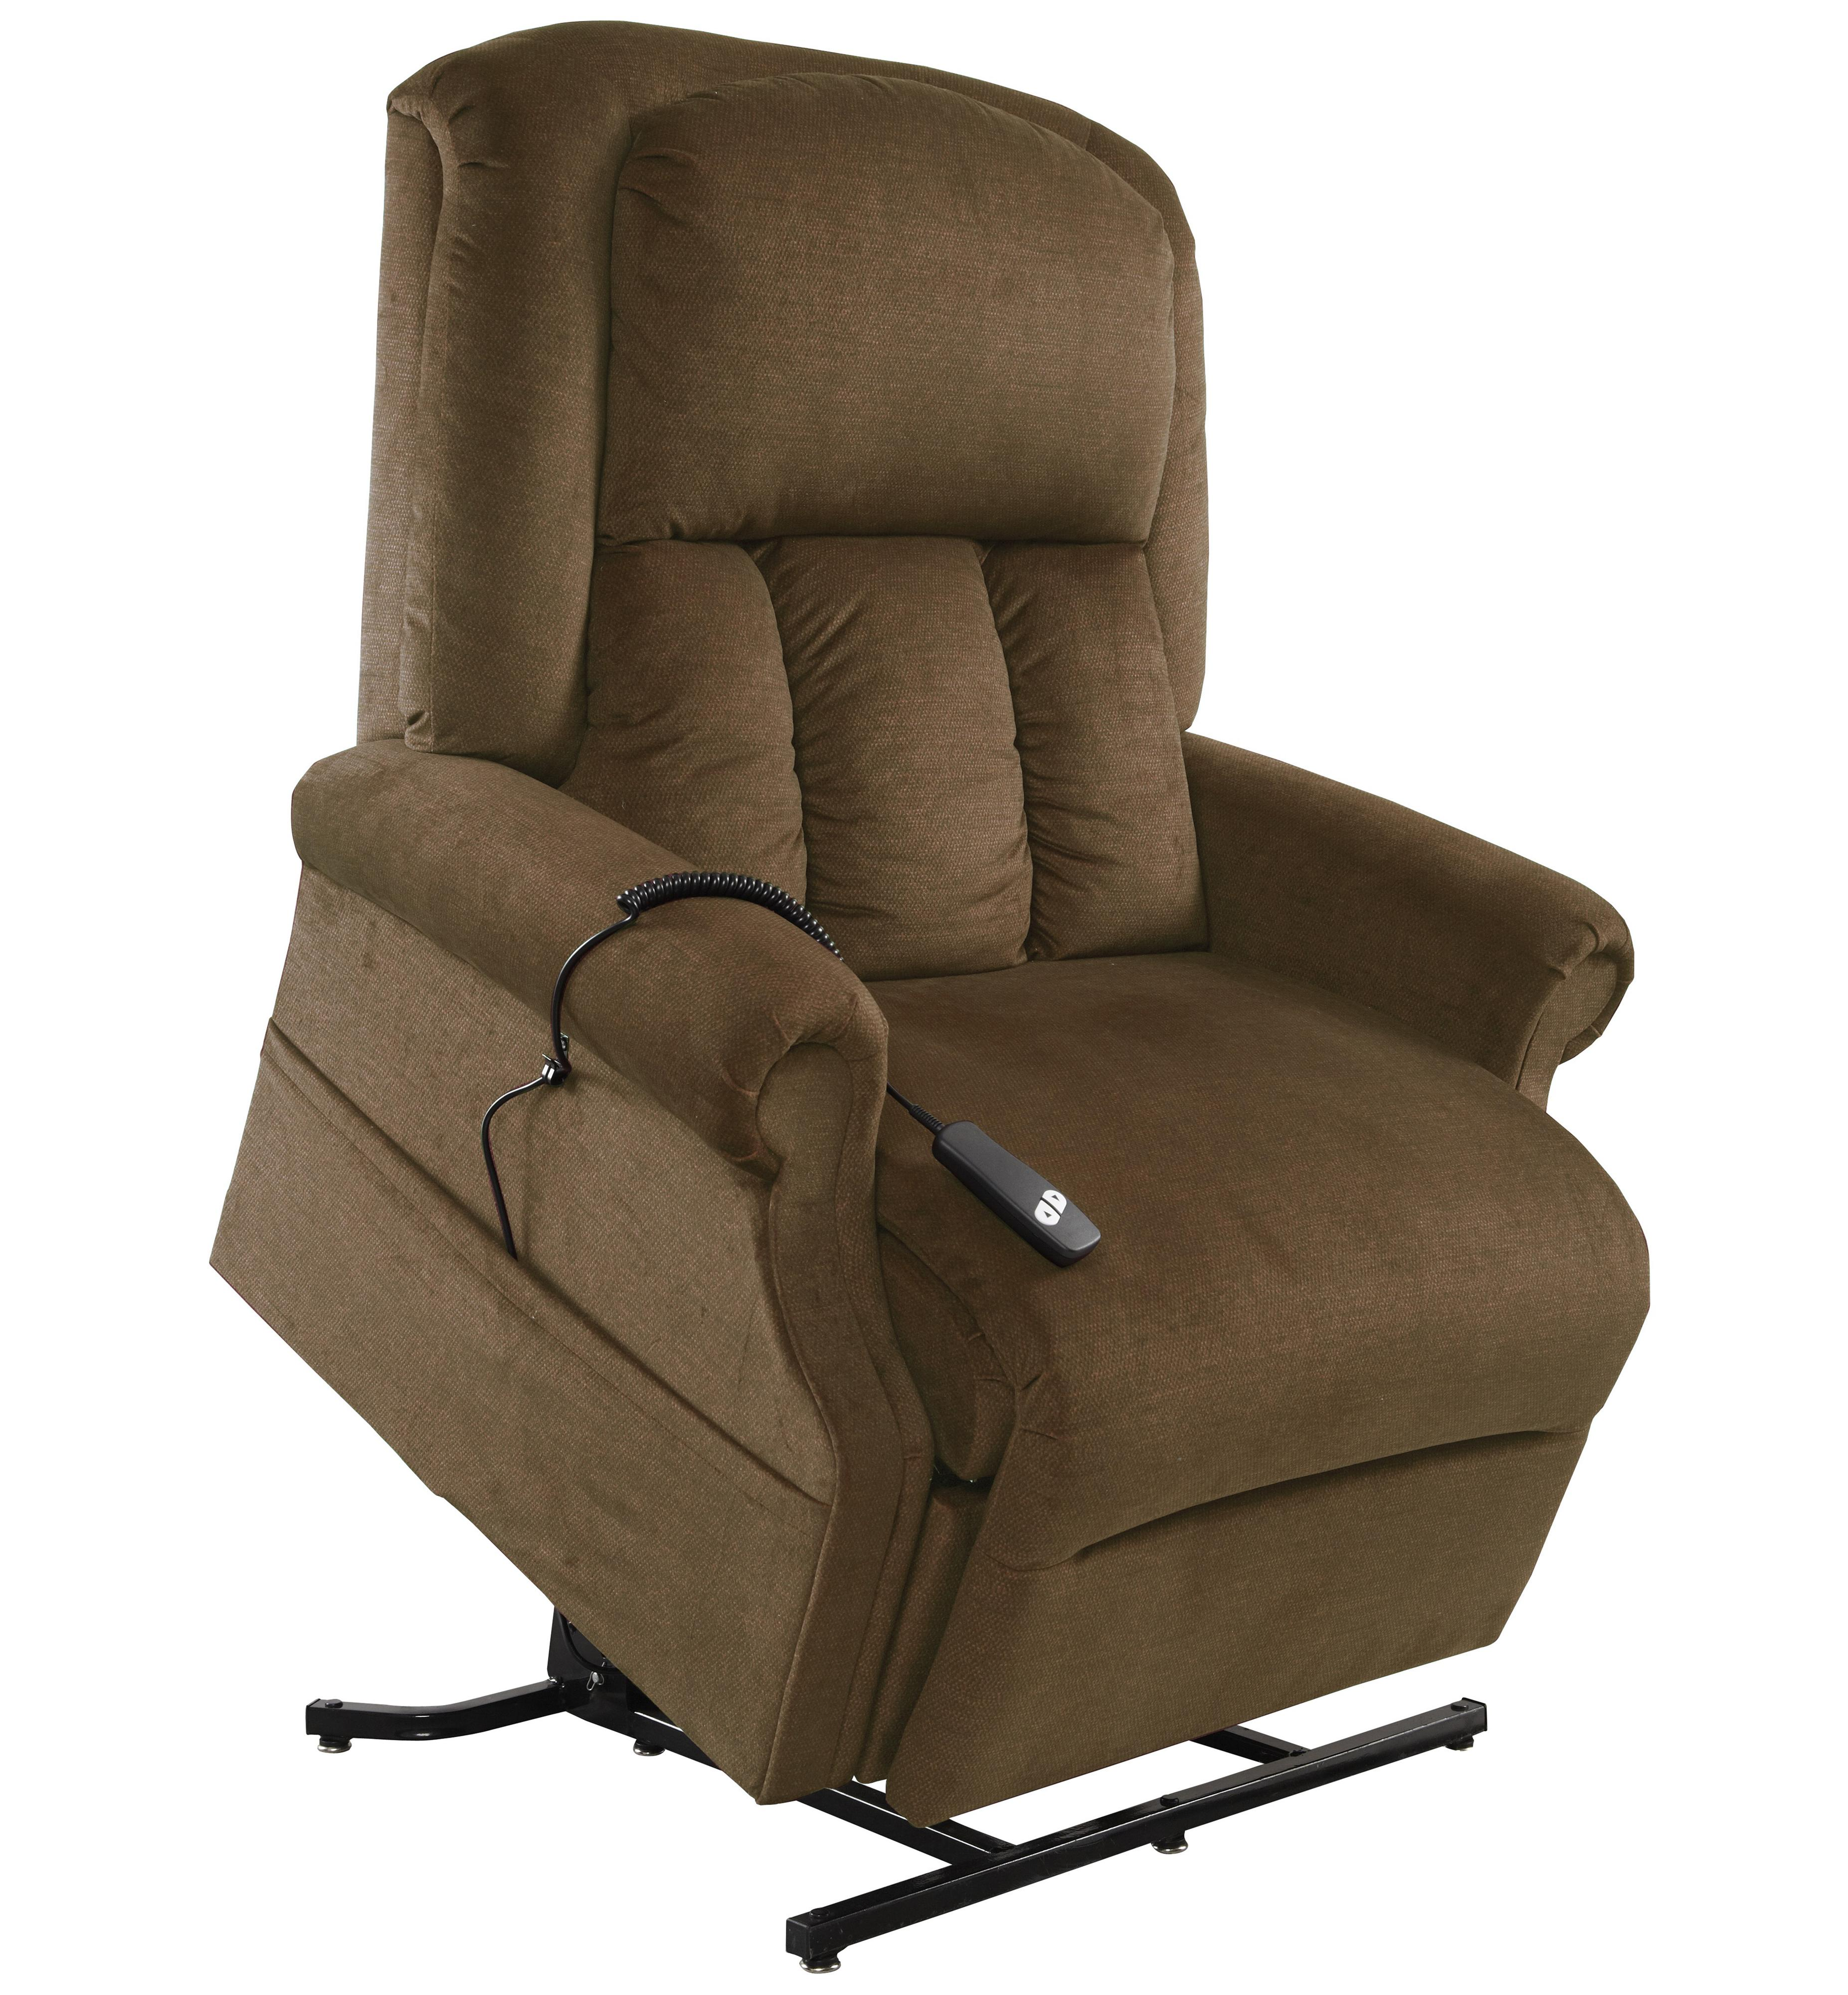 Lift Chairs 3-Position Reclining Lift Chair with Power by Windermere Motion at Steger's Furniture